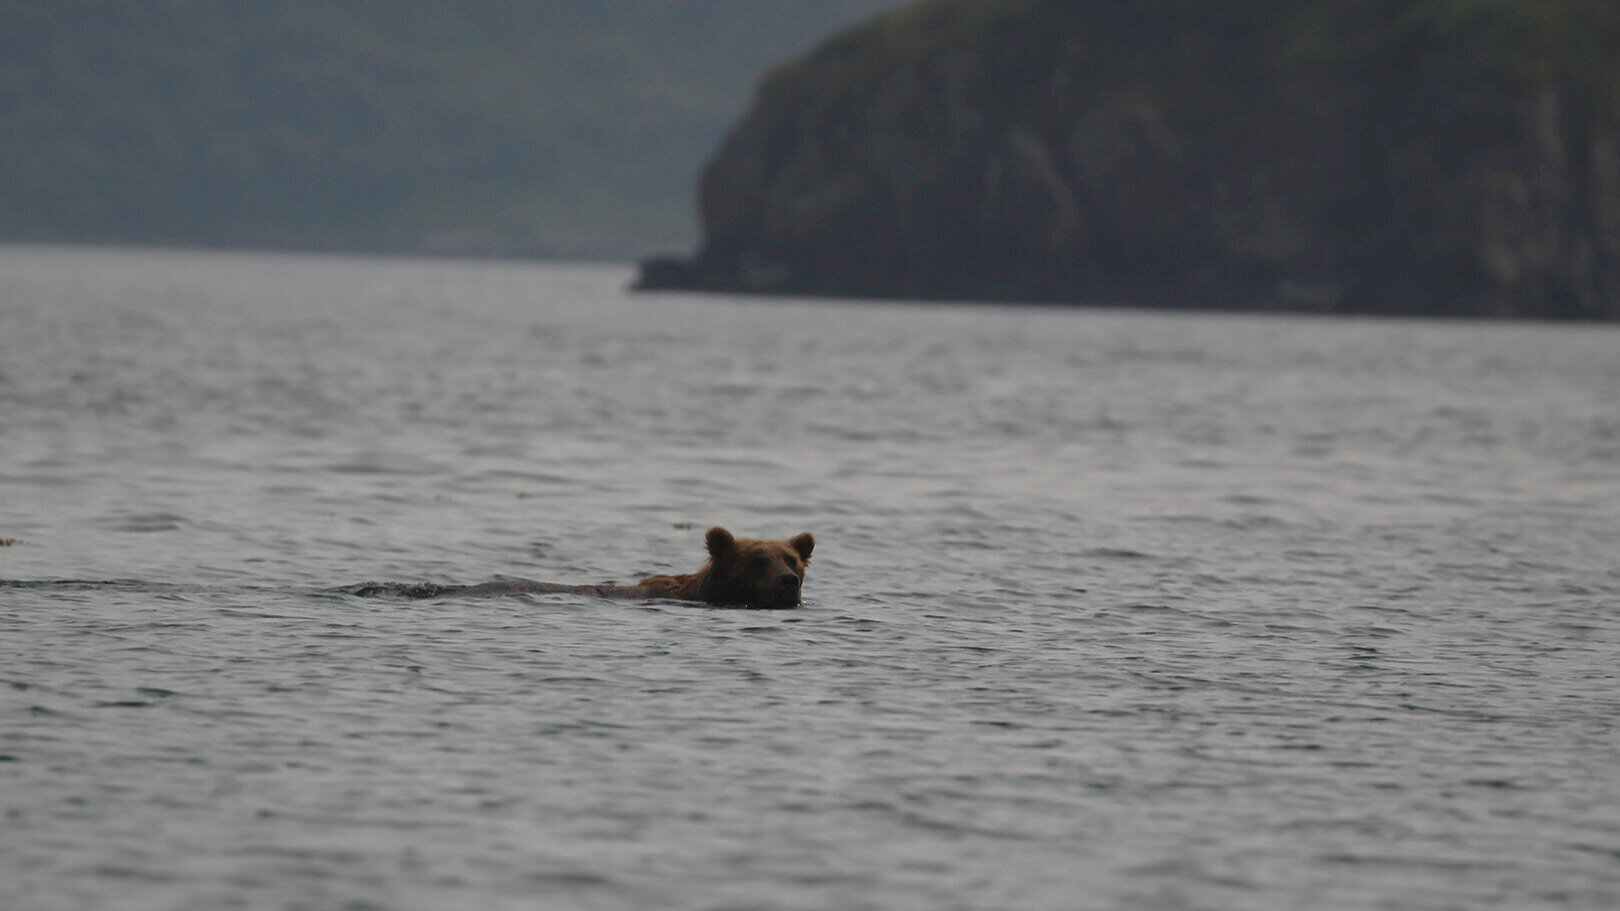 It seemed counterintuitive, but we even saw bears swimming in the water!